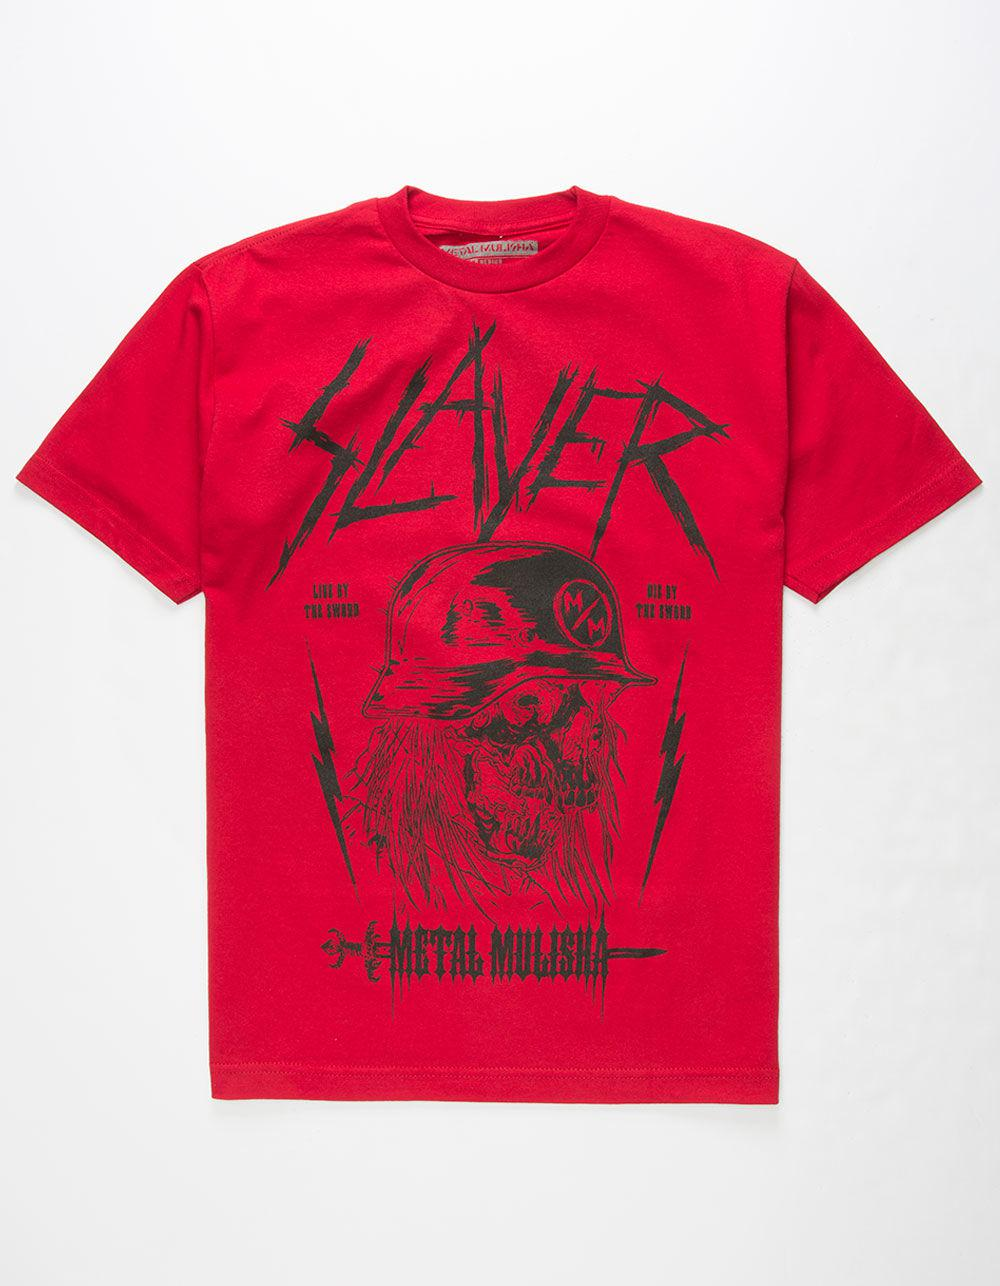 610059c06150ae Lyst - Metal Mulisha X Slayer By The Sword Mens T-Shirt in Red for Men